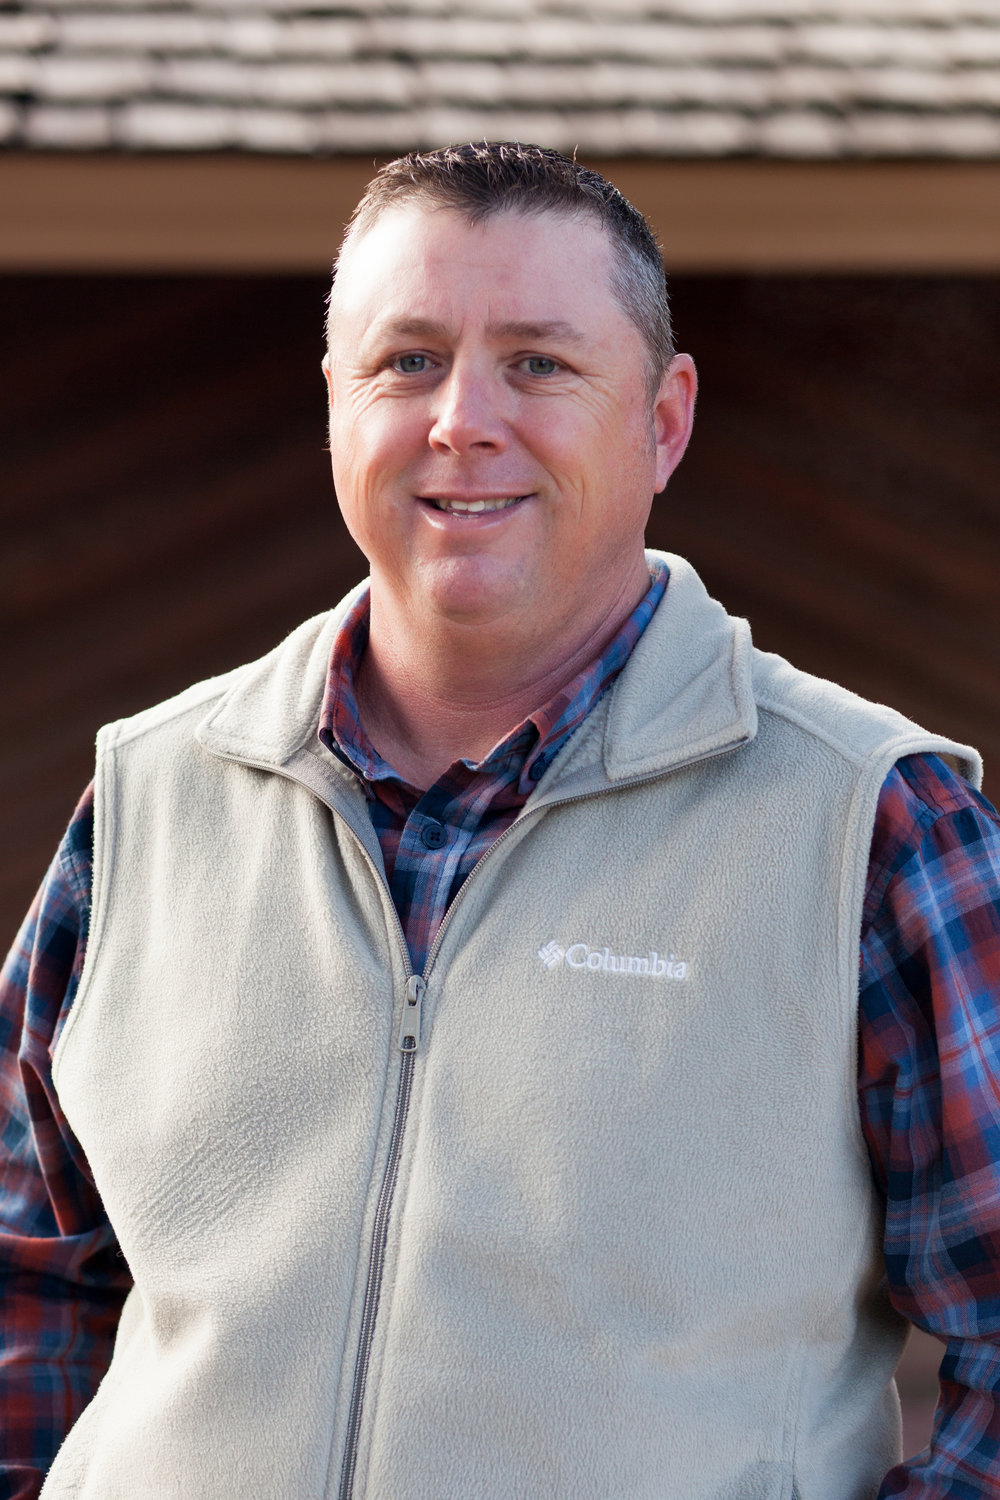 Brian Savage - Office Manager, Agent432-599-4496cowboys_year@yahoo.com